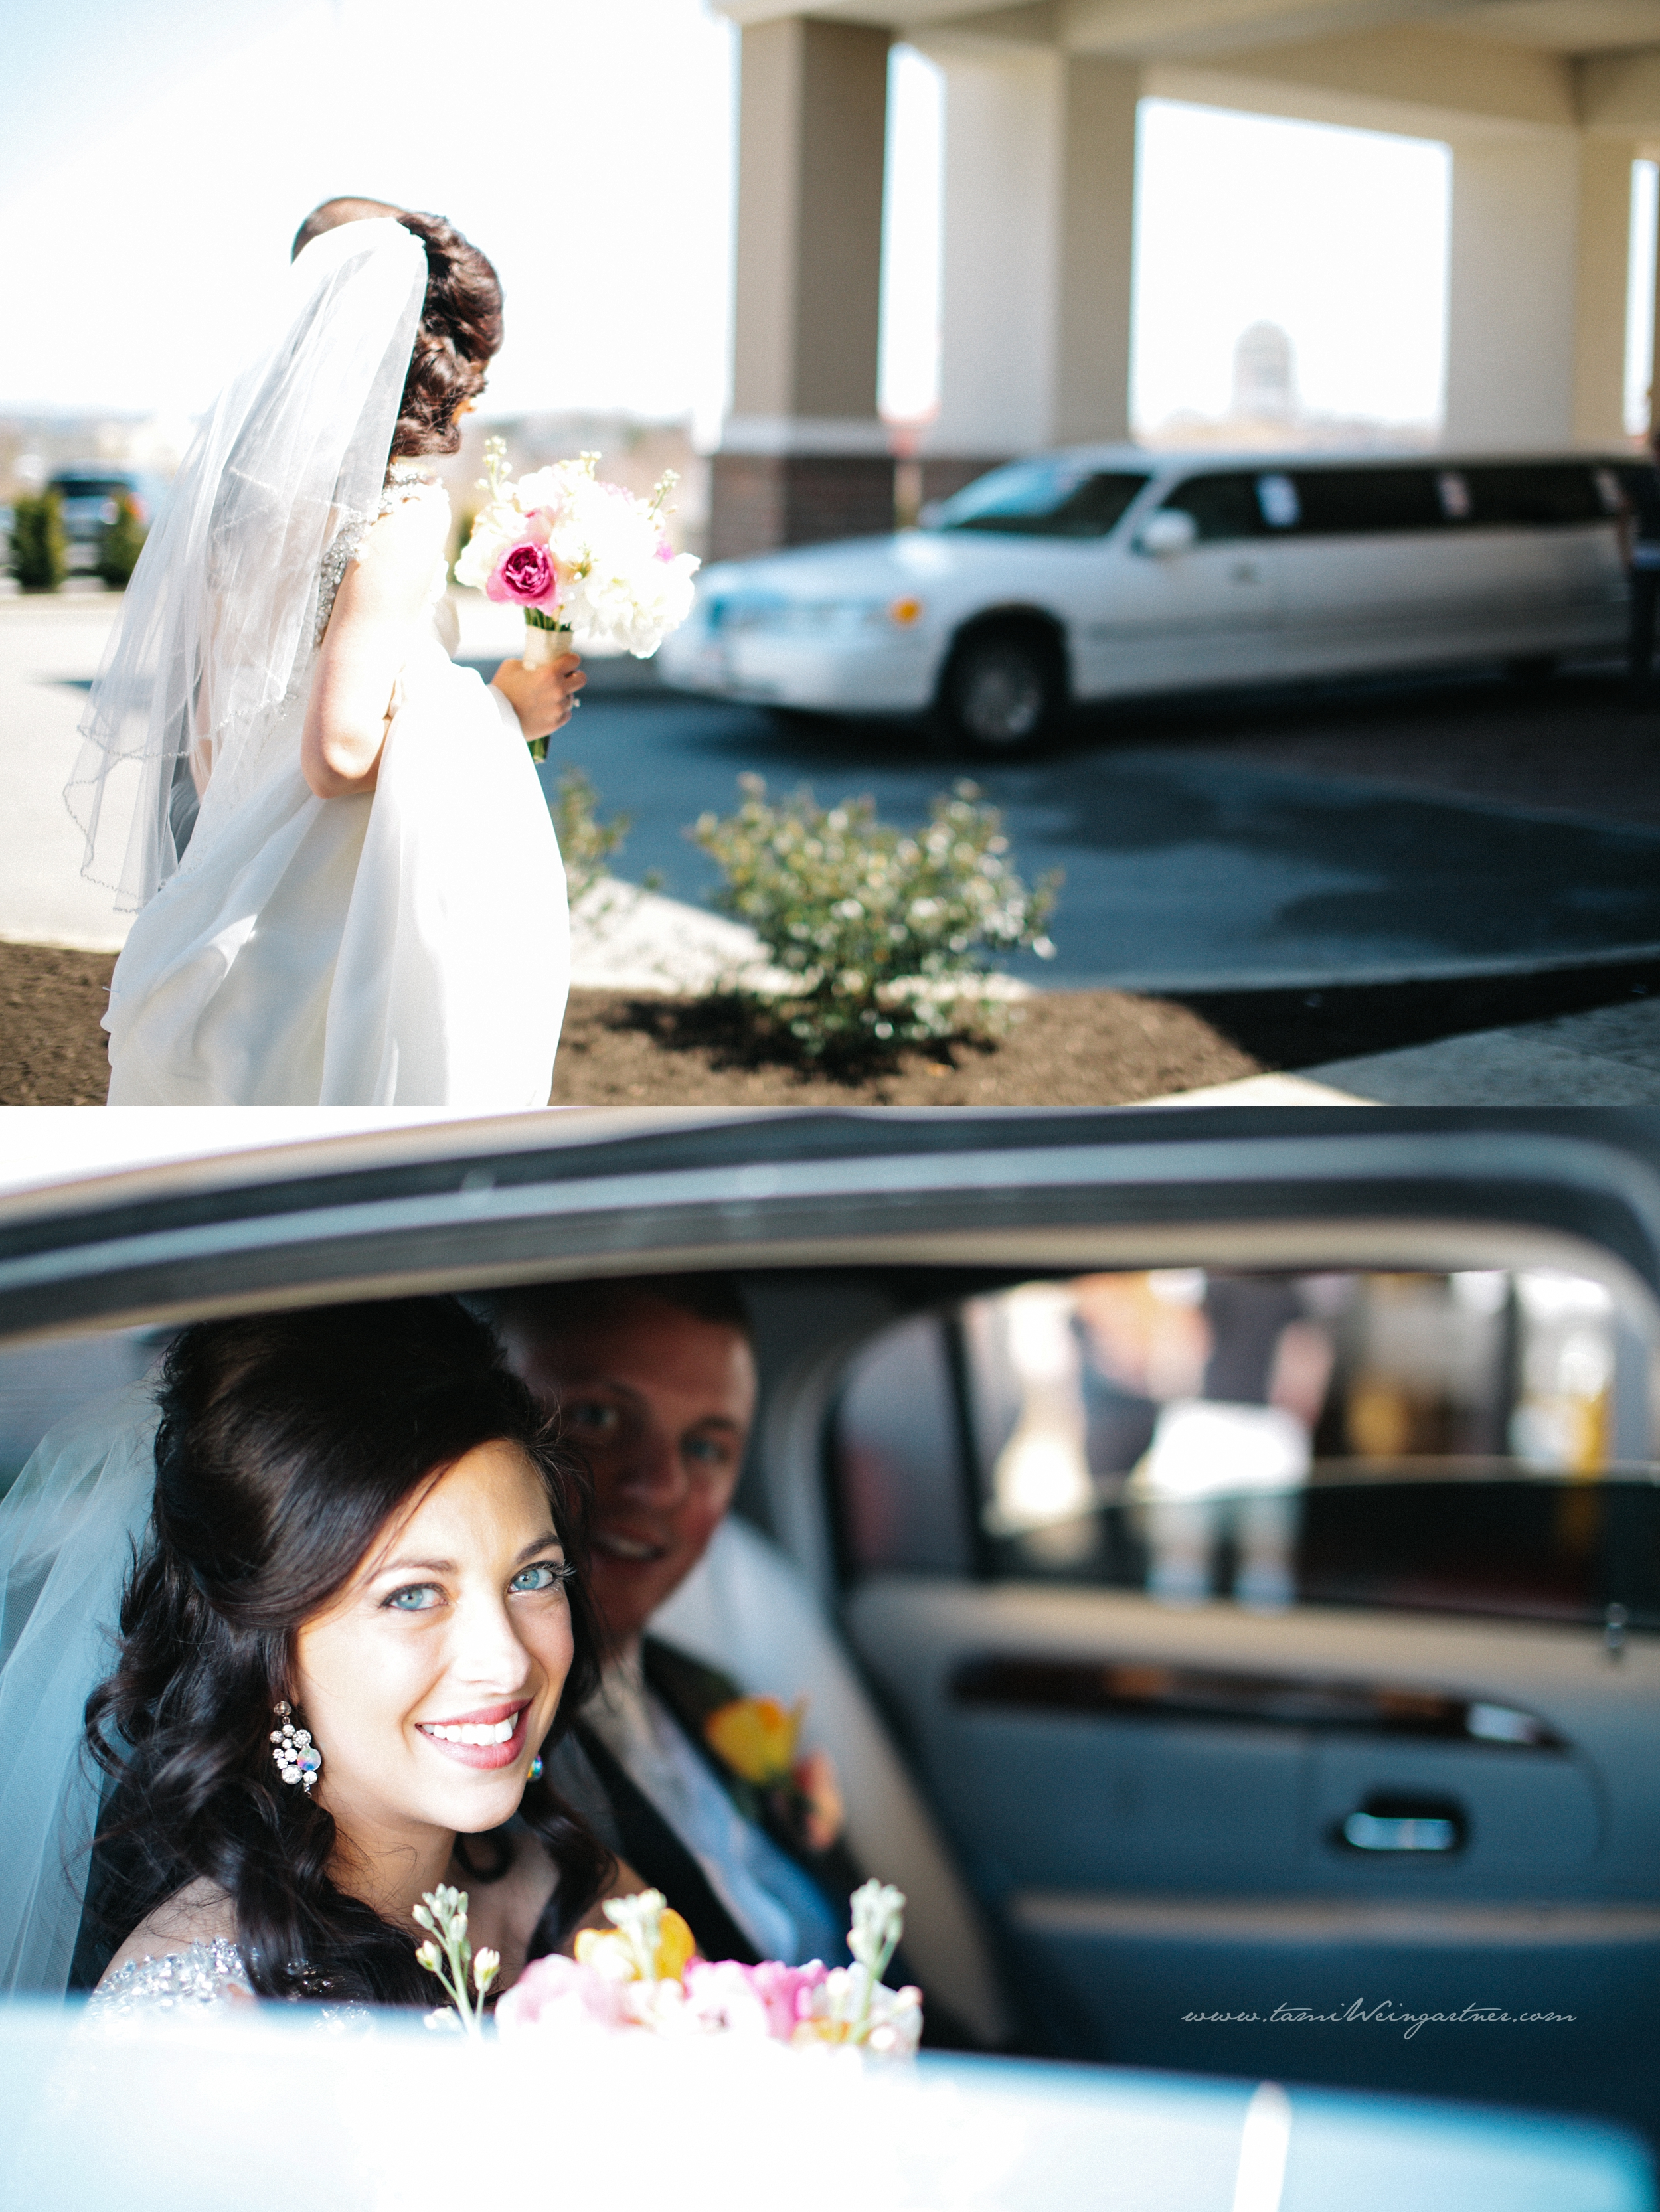 Bride getting ready to leave for the church in a limo